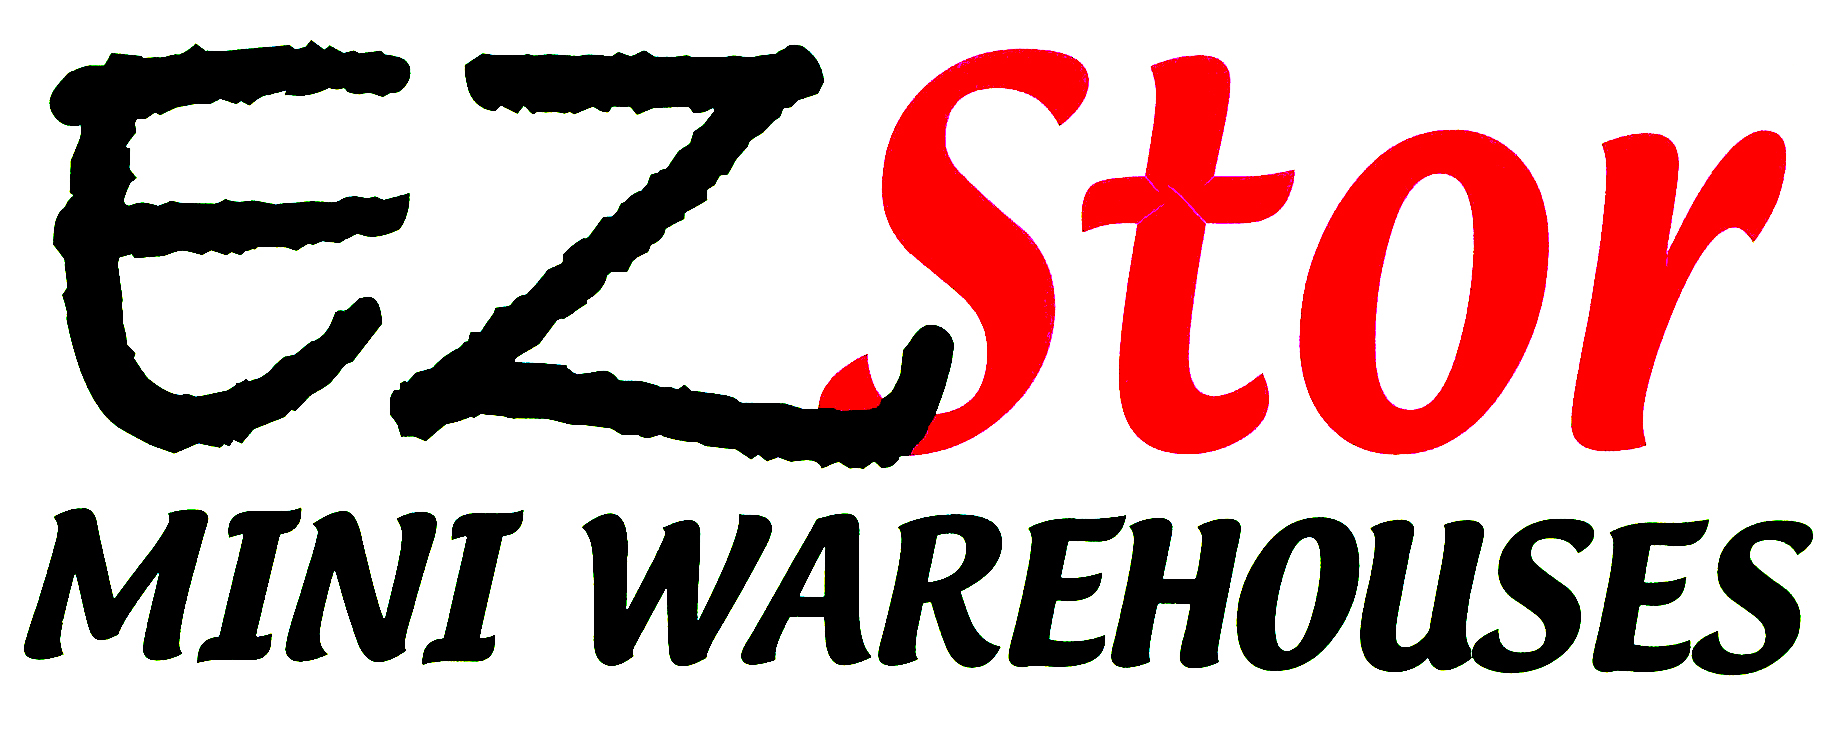 EZ Stor Mini Warehouses